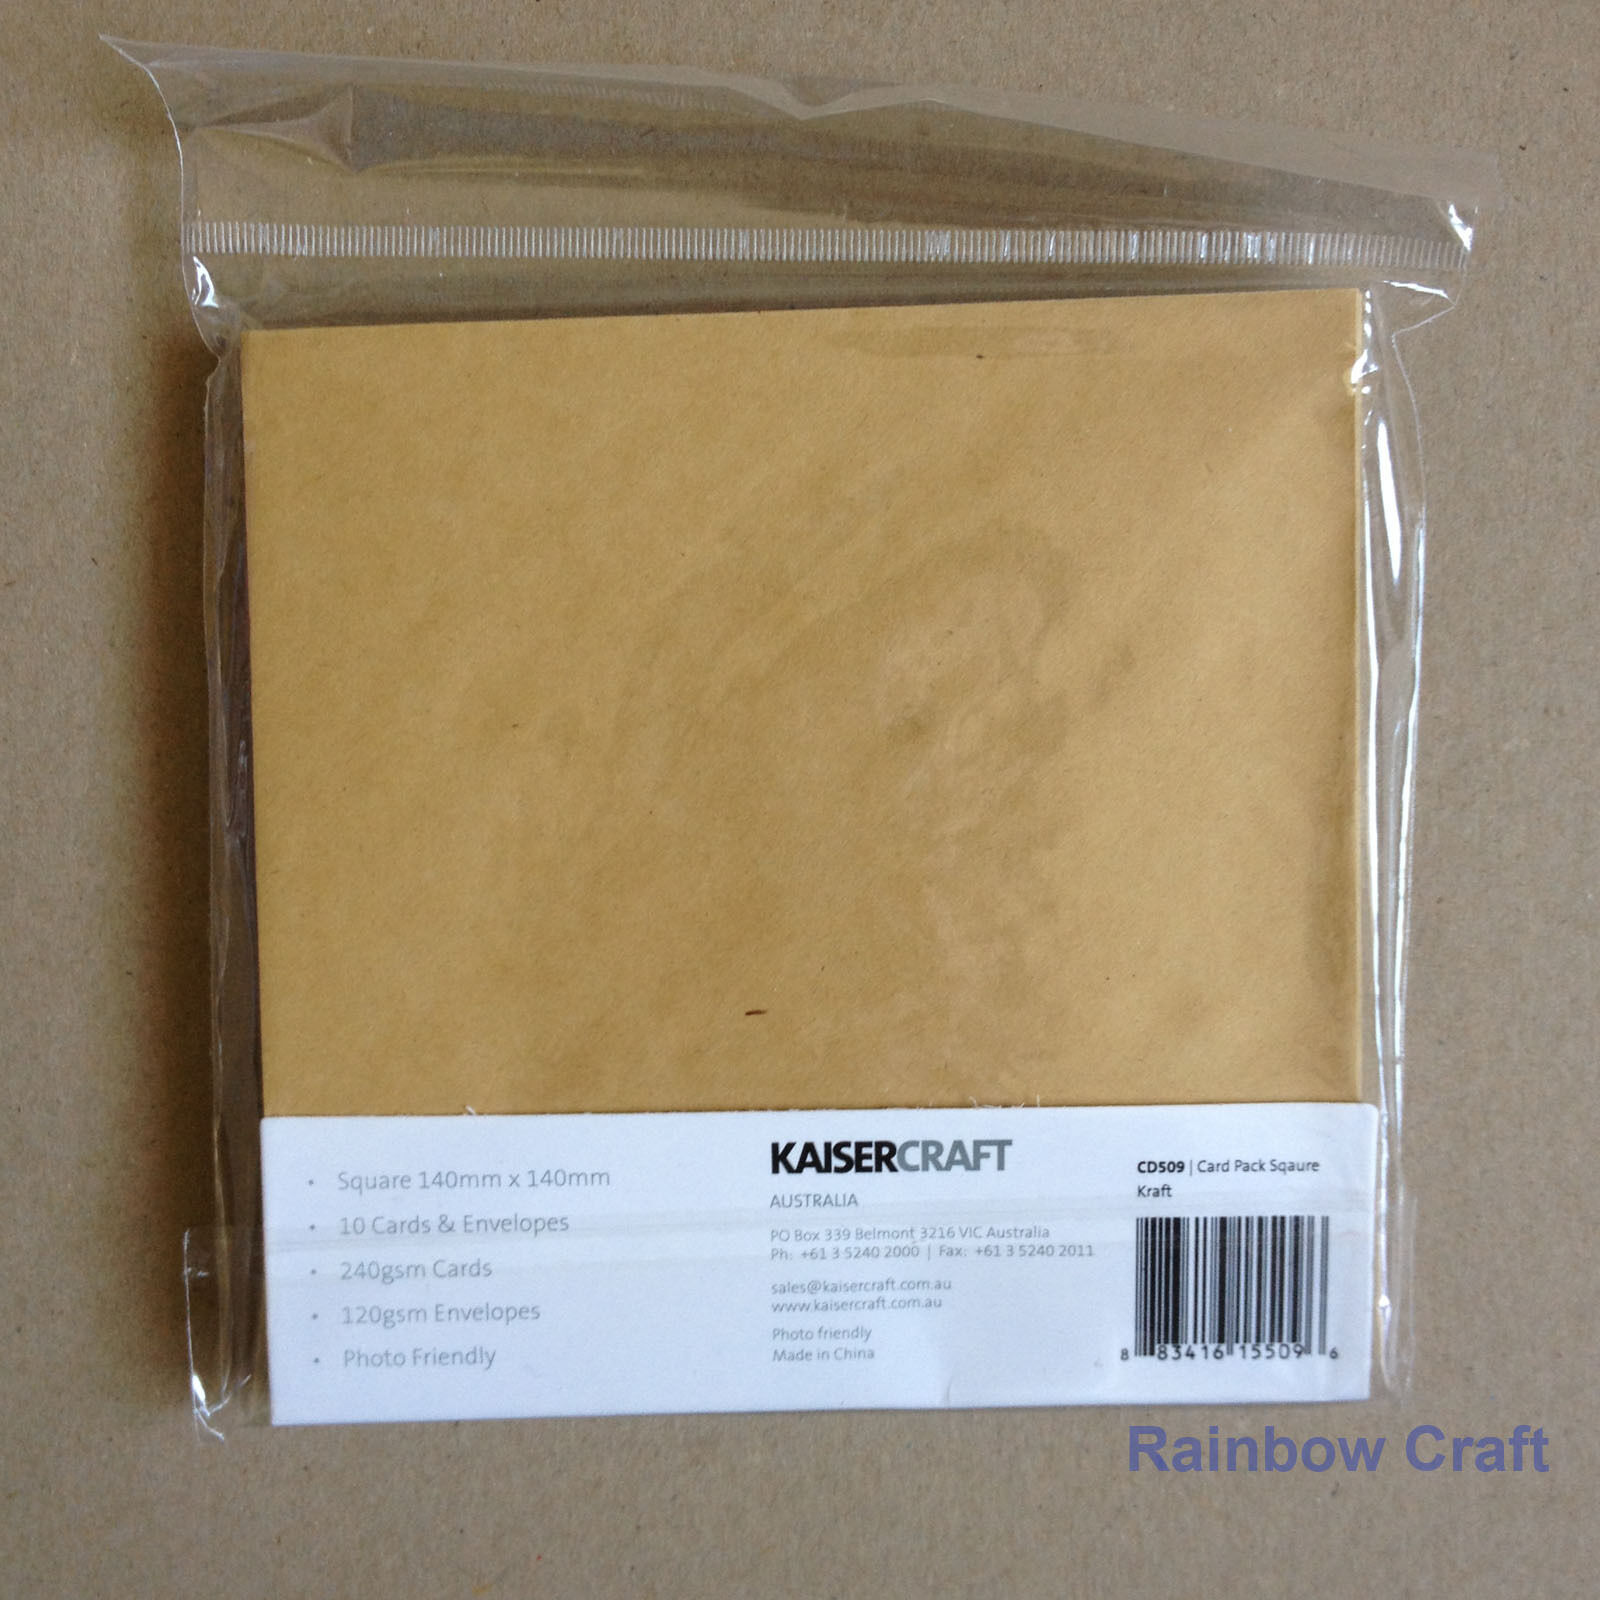 Kaisercraft 10 blank Cards & Envelopes Square / C6 size (12 selections) - Kraft